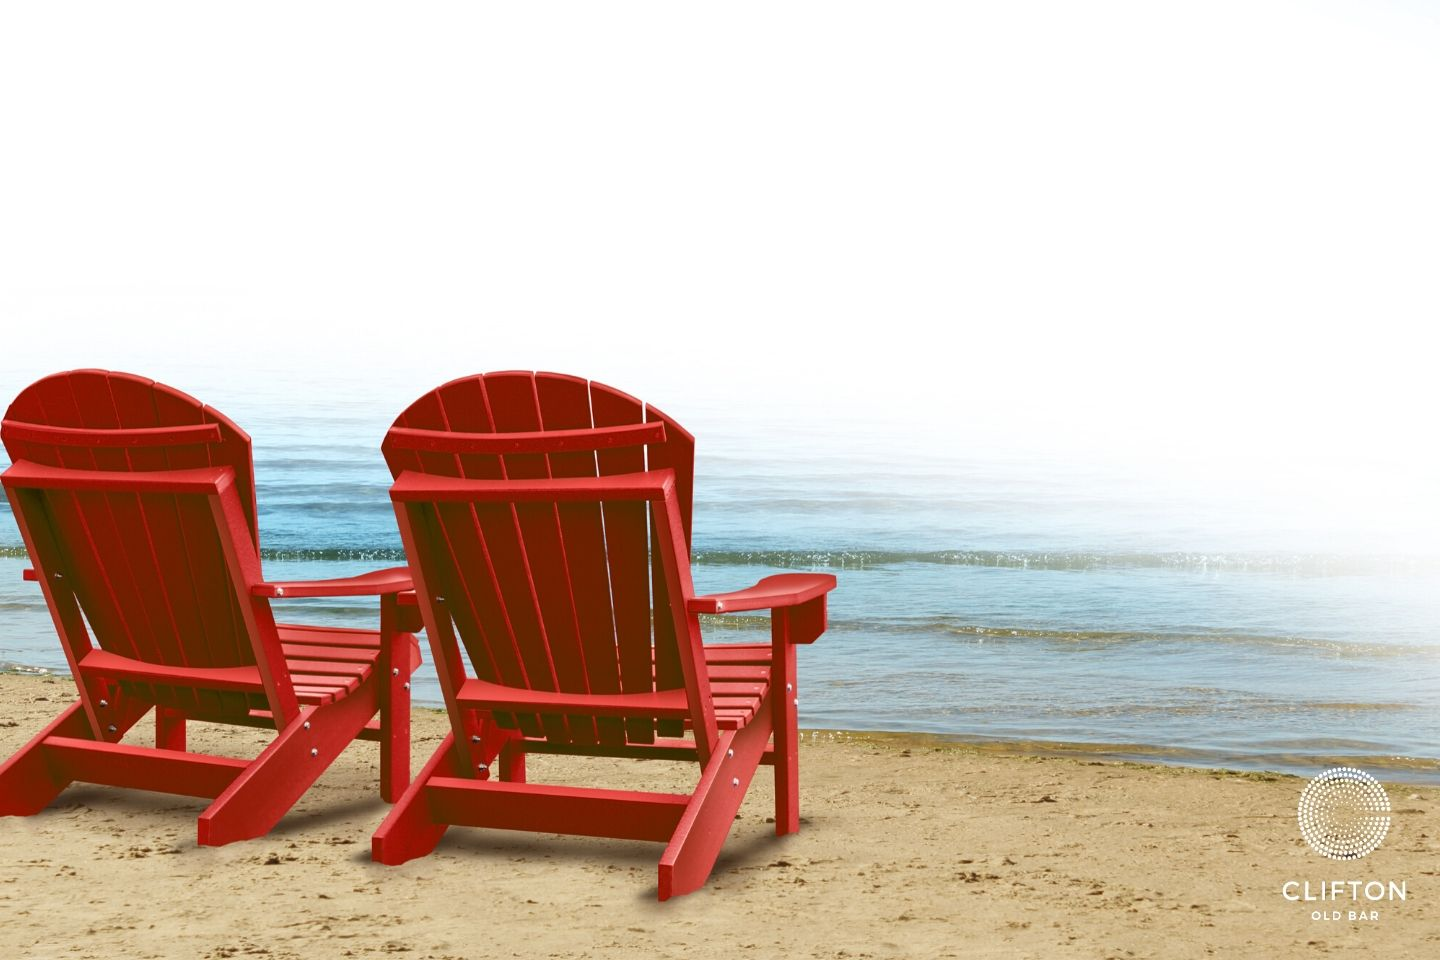 Key considerations when planning your retirement